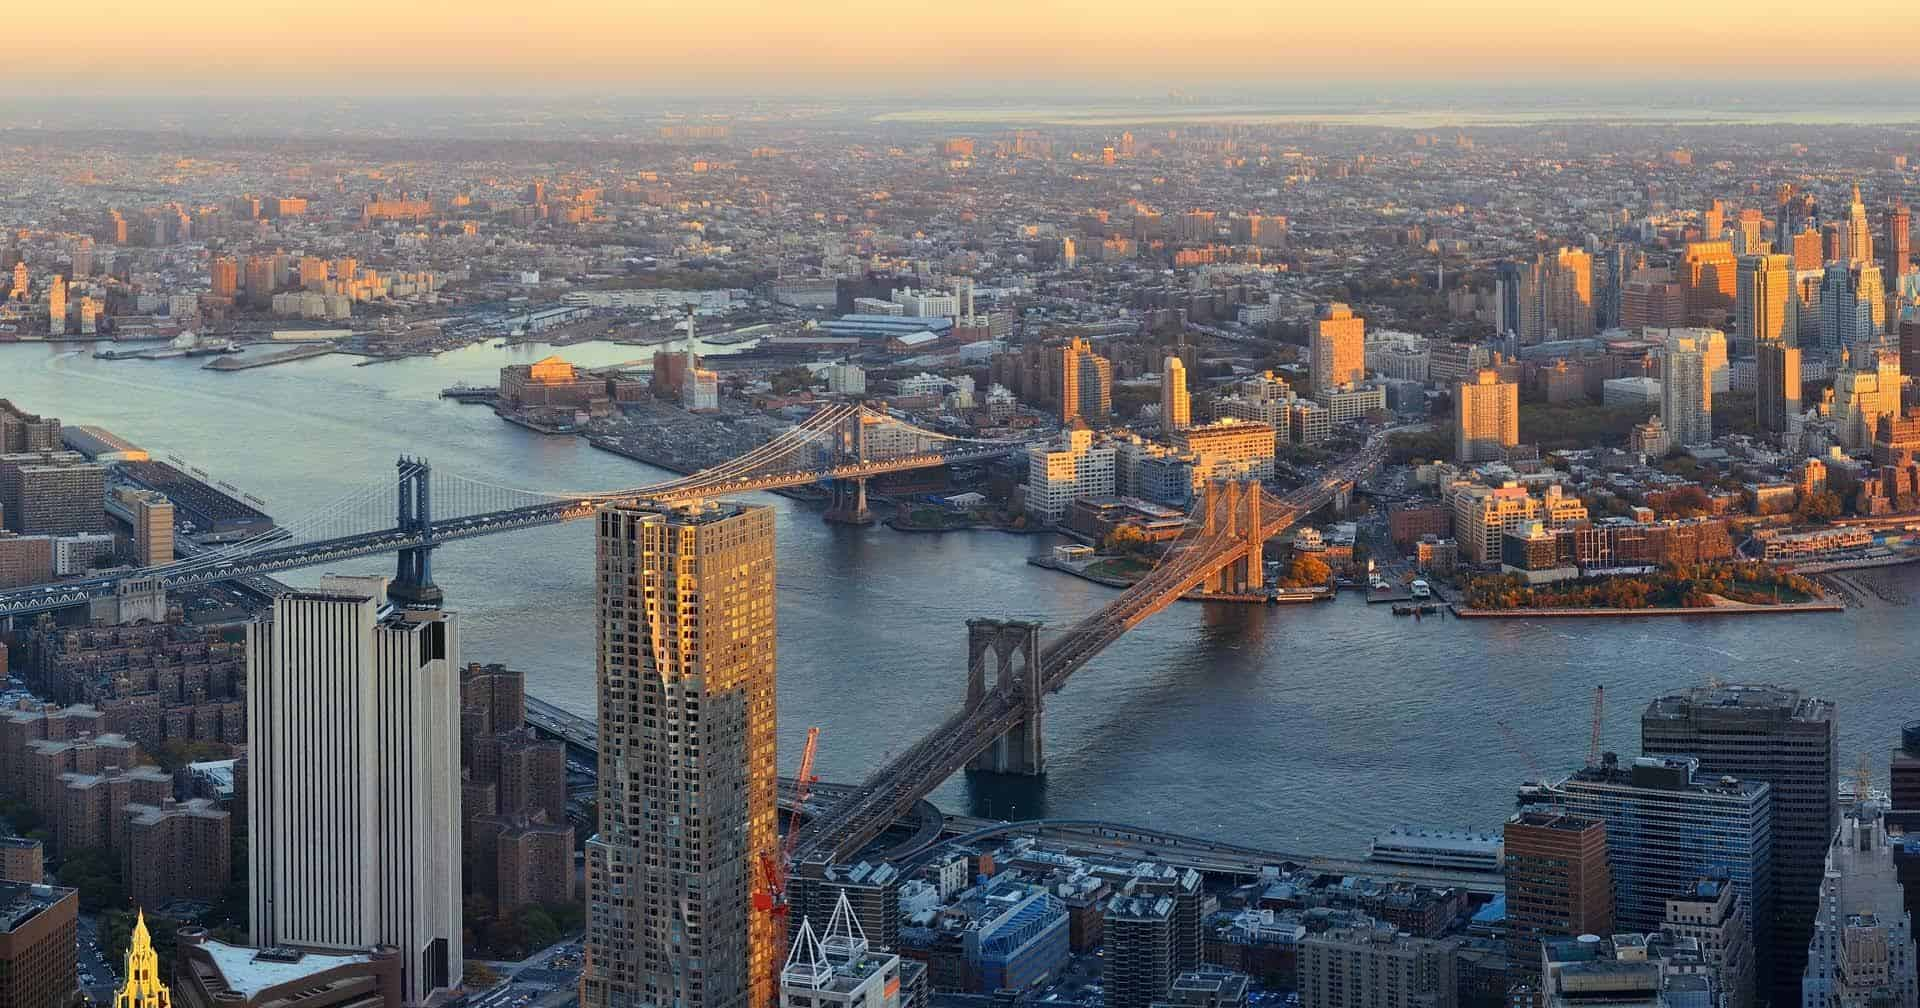 points of interest where to go and places to visit in new york city featured